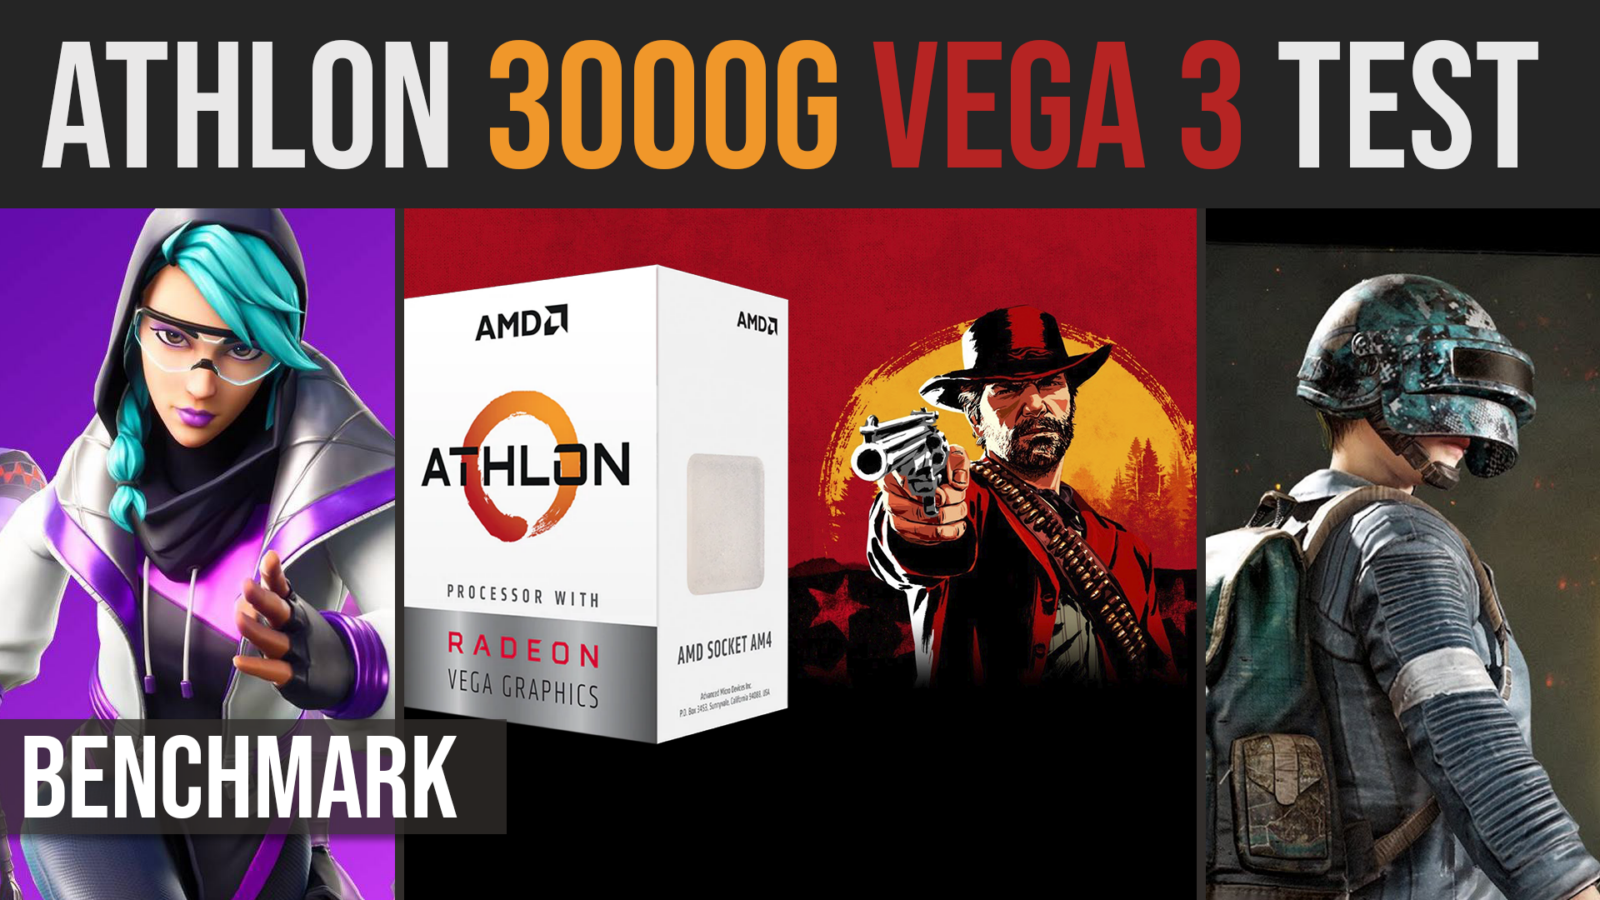 AMD Athlon 3000G | Vega 3 benchmark test in 16 games